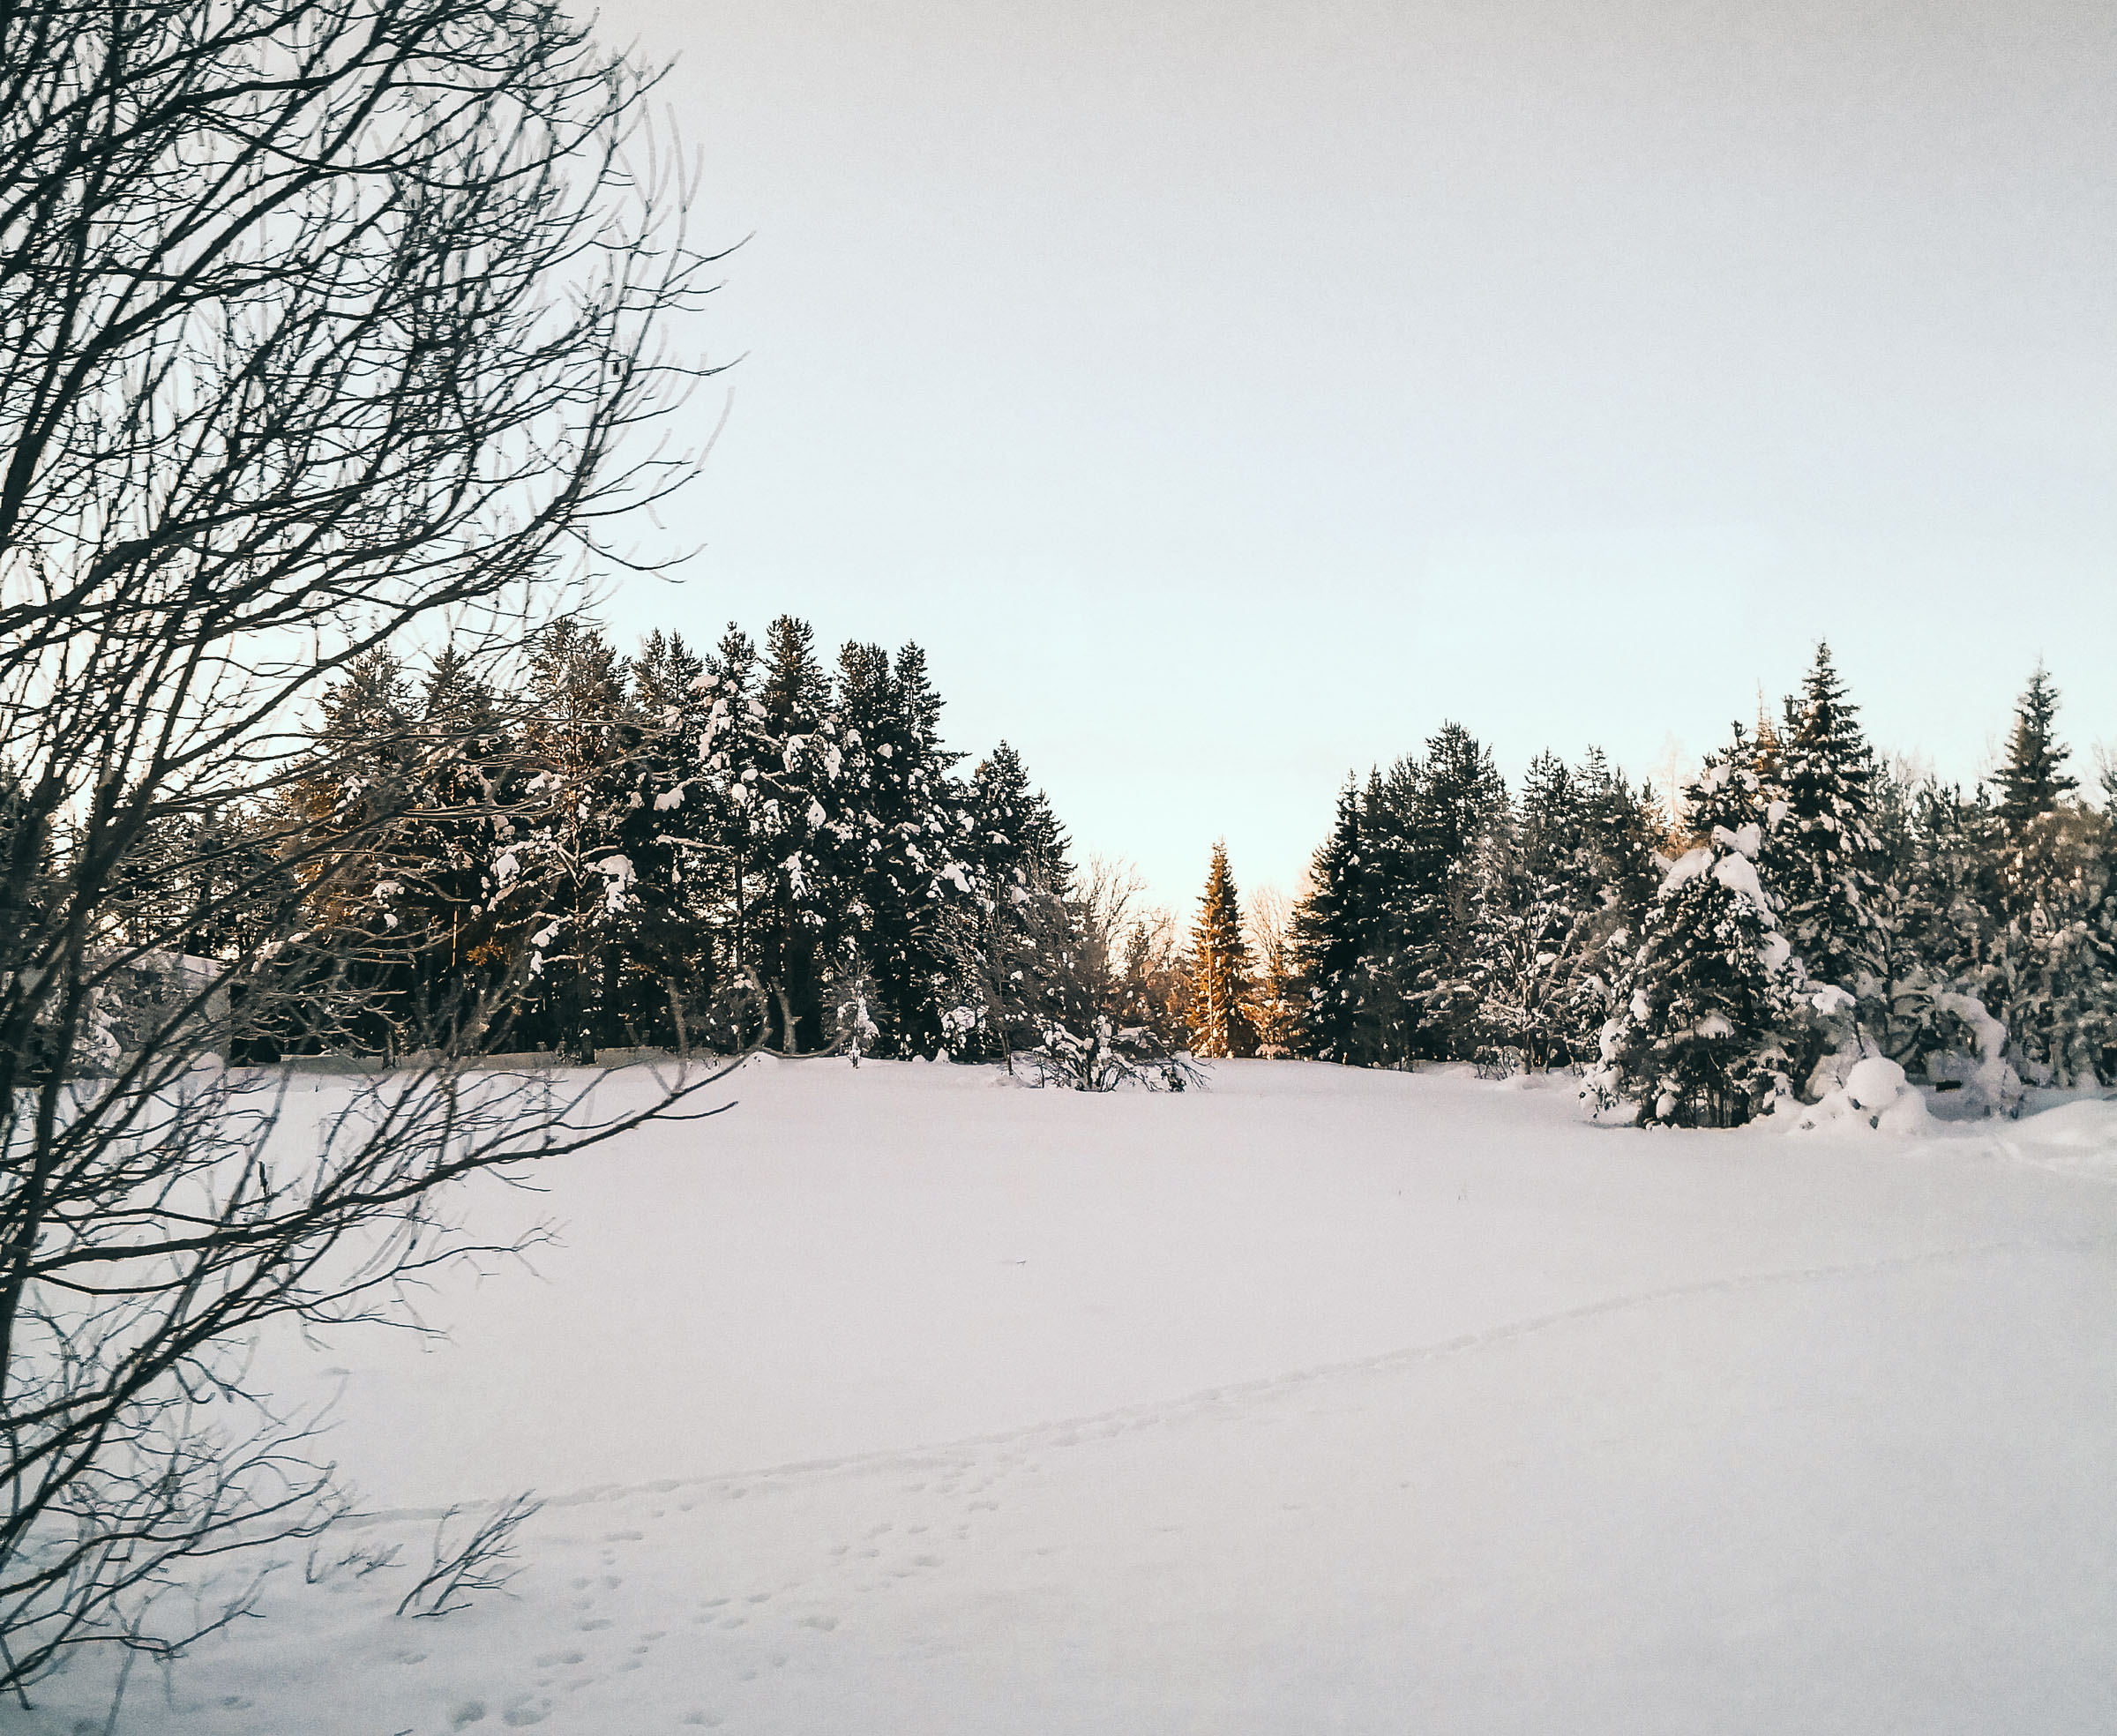 Tommeezjerry-Lifestyleblog-Fashionblog-Maennermodeblog-Maennerblog-Modeblog-Huawei-Mate-10-Pro-Travel-Photography-Finland-Winter-Winterwonderland-Nature-Snow-Ice